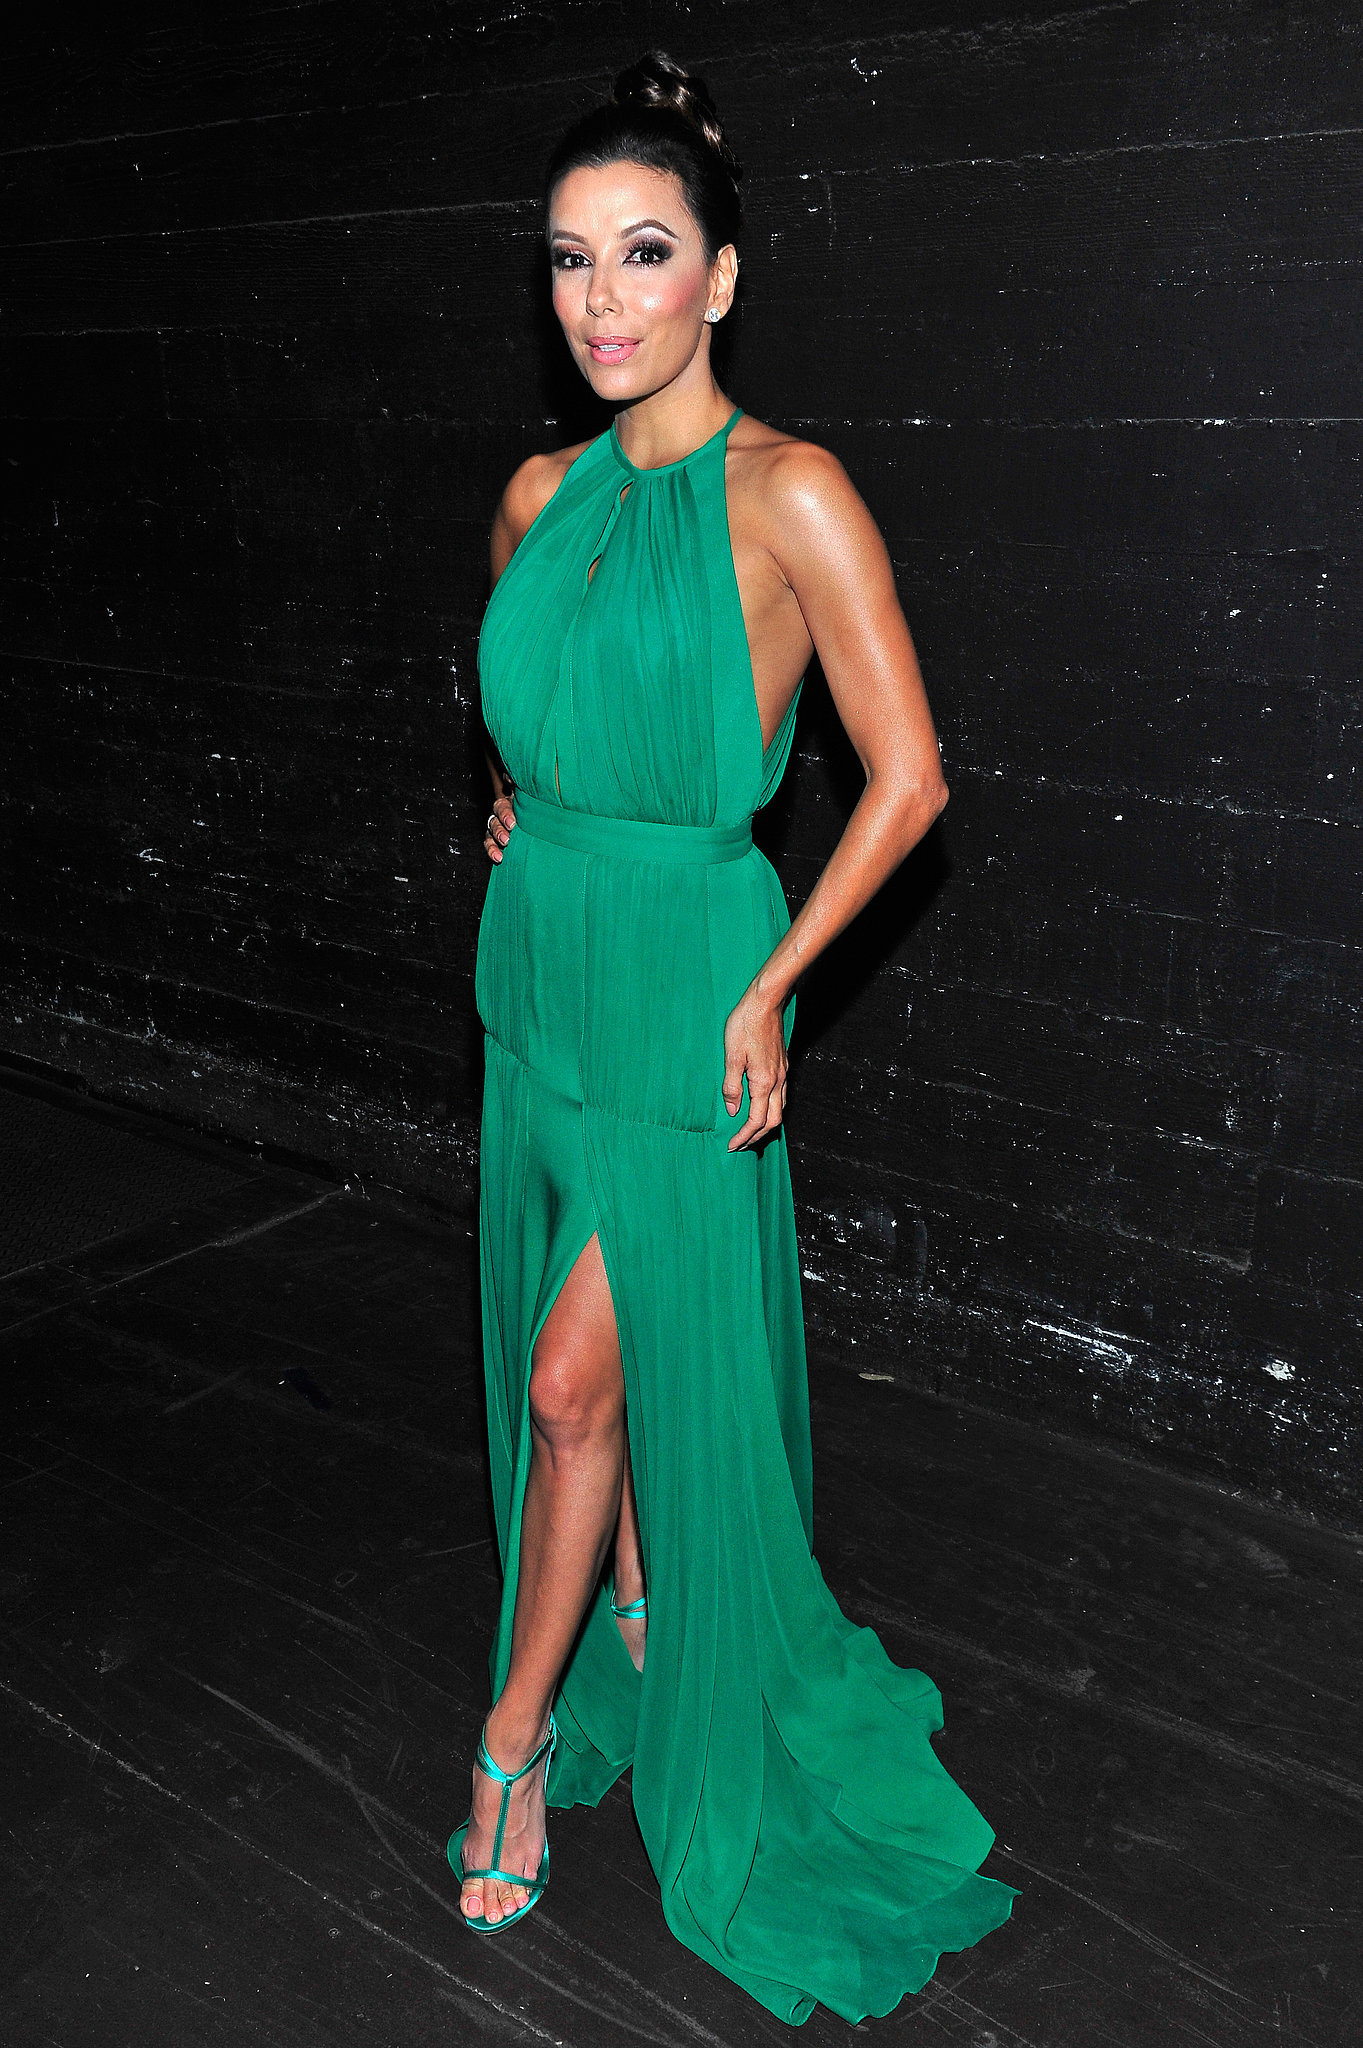 Longoria took a break from cohosting the 2013 ALMA Awards to slip into an aww-inducing emerald Randi Rahm gown.